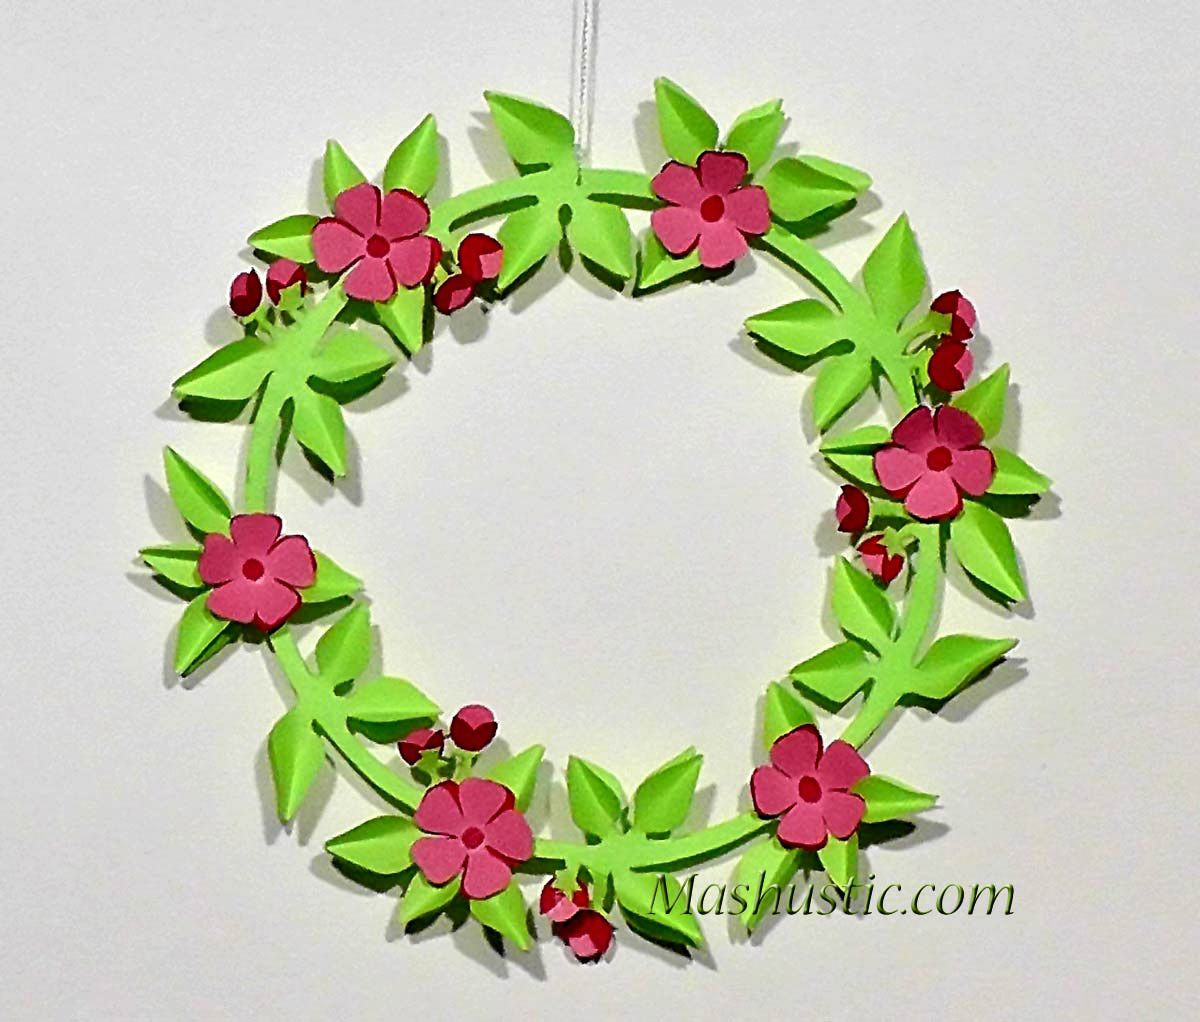 Kids Crafts Easy Paper Wreaths Mashustic Paper Flowers And